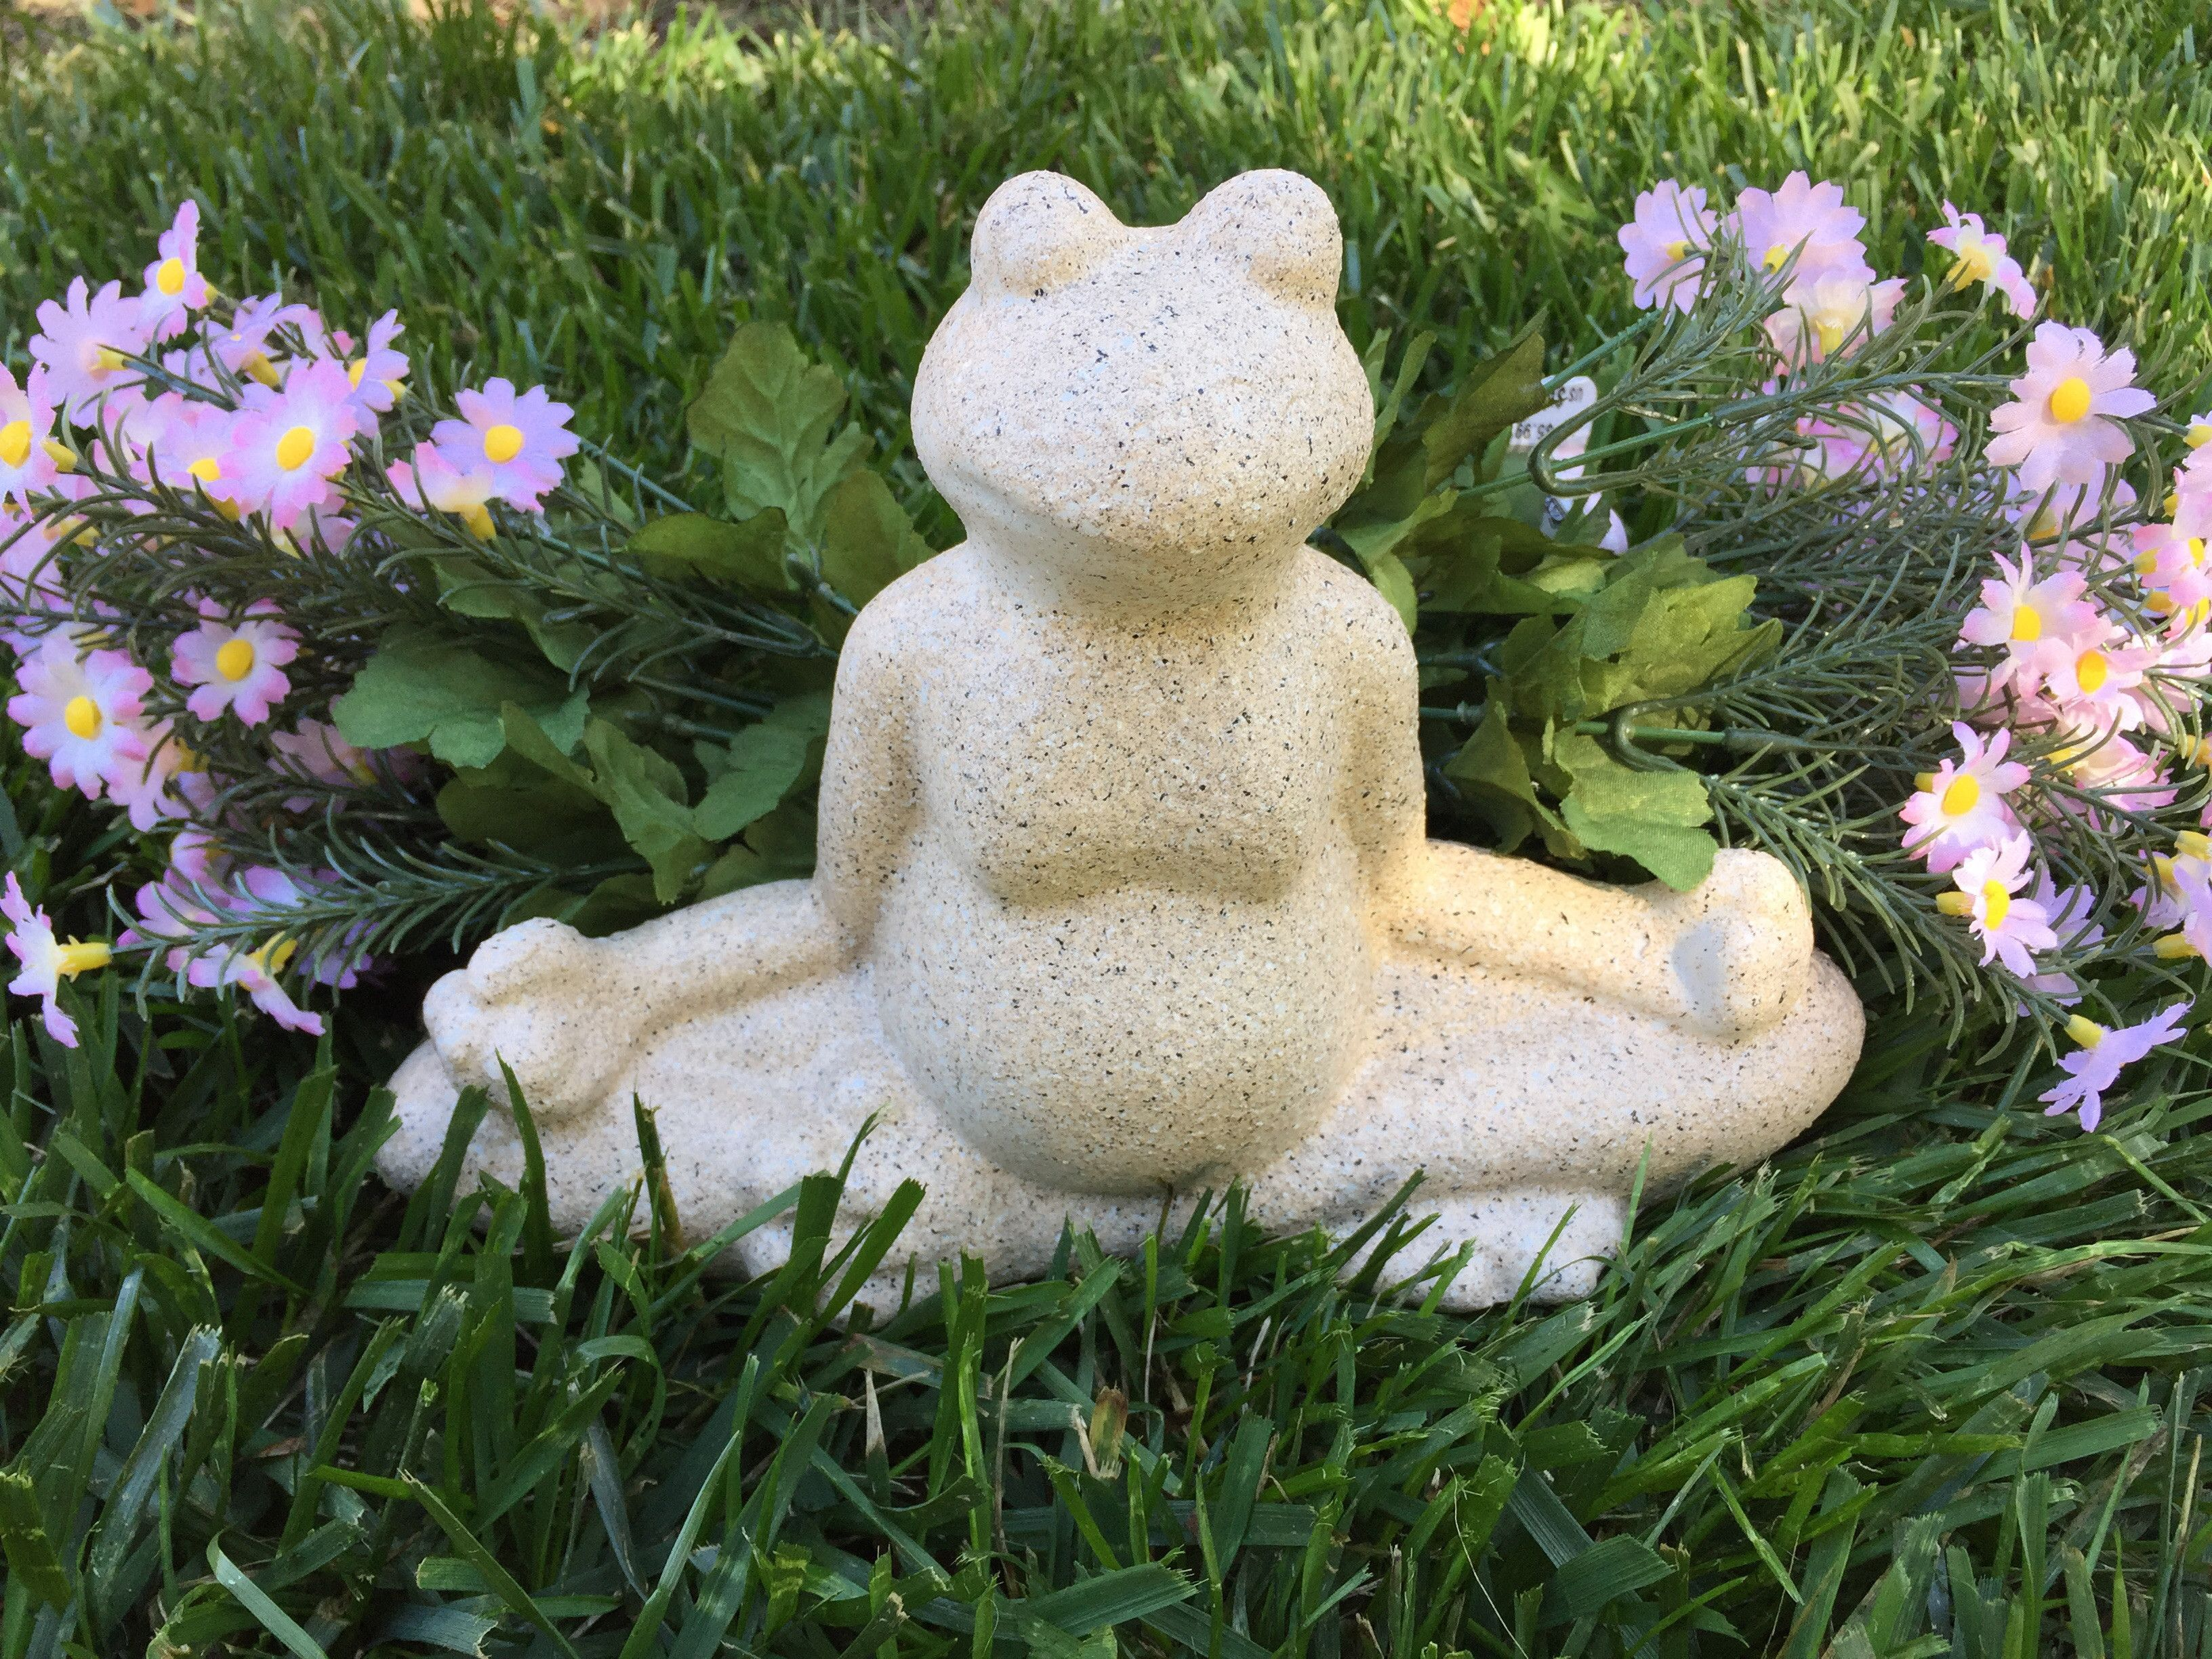 Frog statues yoga statues garden decor Mother\'s Day gifts meditation ...